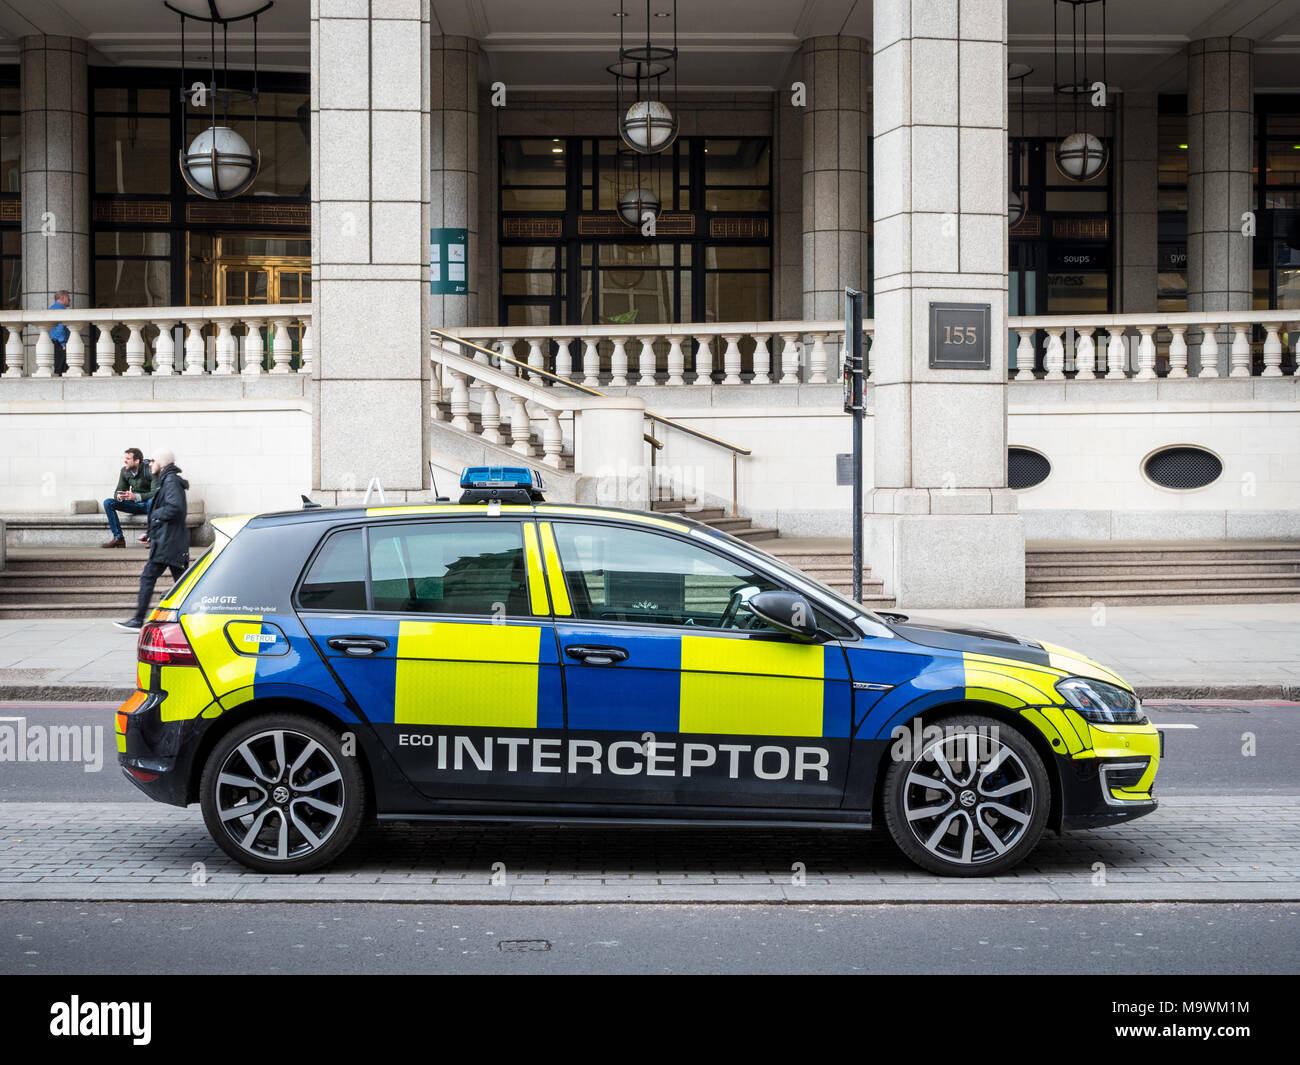 Eco Police Interceptor Car - City of London Police using a VW Golf GTE Hybrid  as fast response interceptor - Stock Image